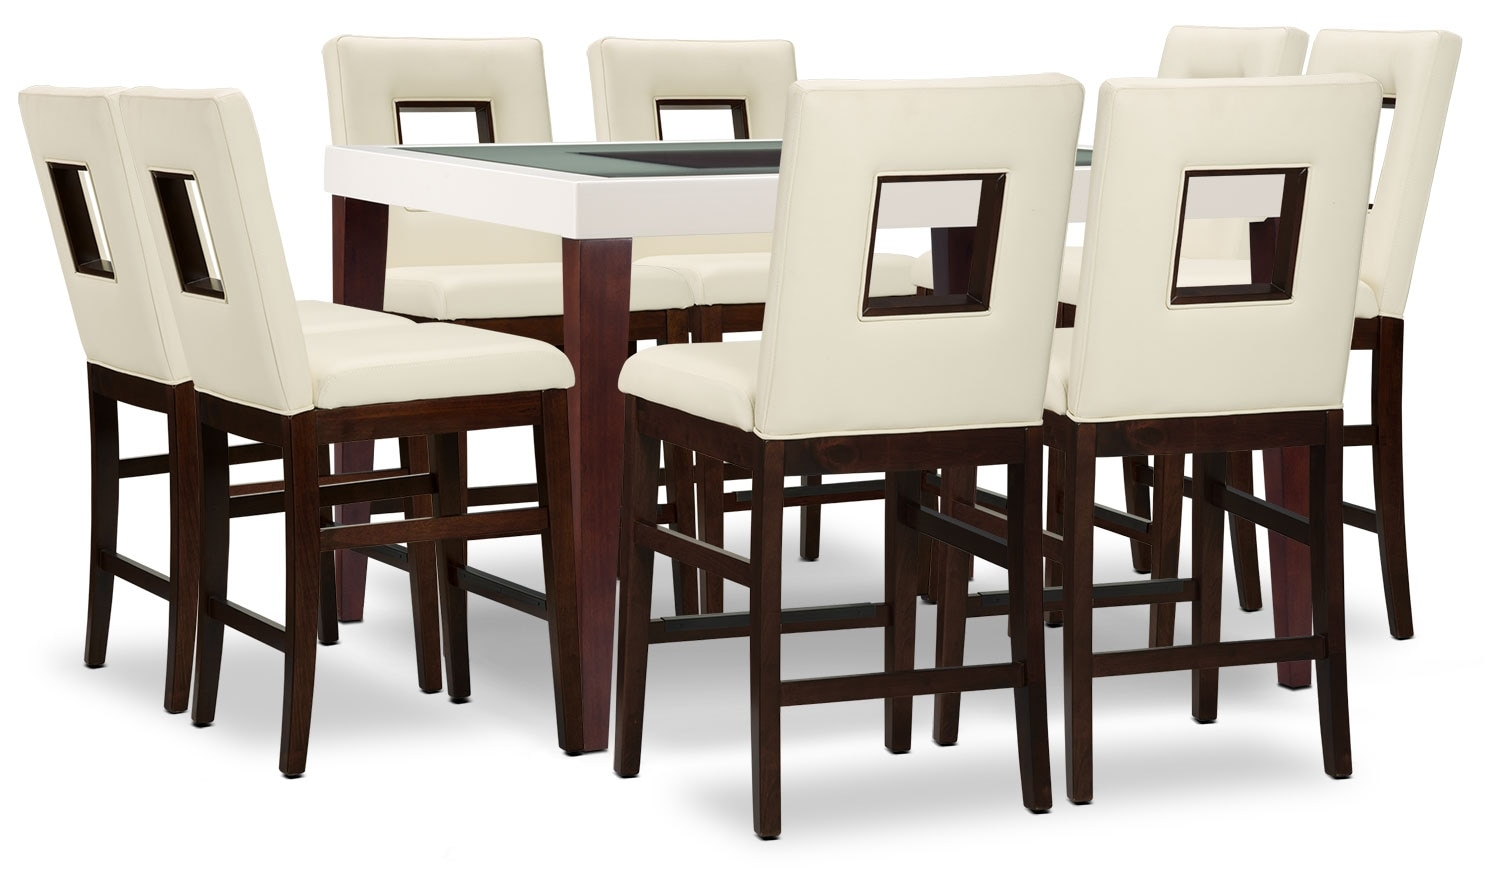 Dining Room Furniture - Zenoe 9-Piece Counter-Height Dining Package